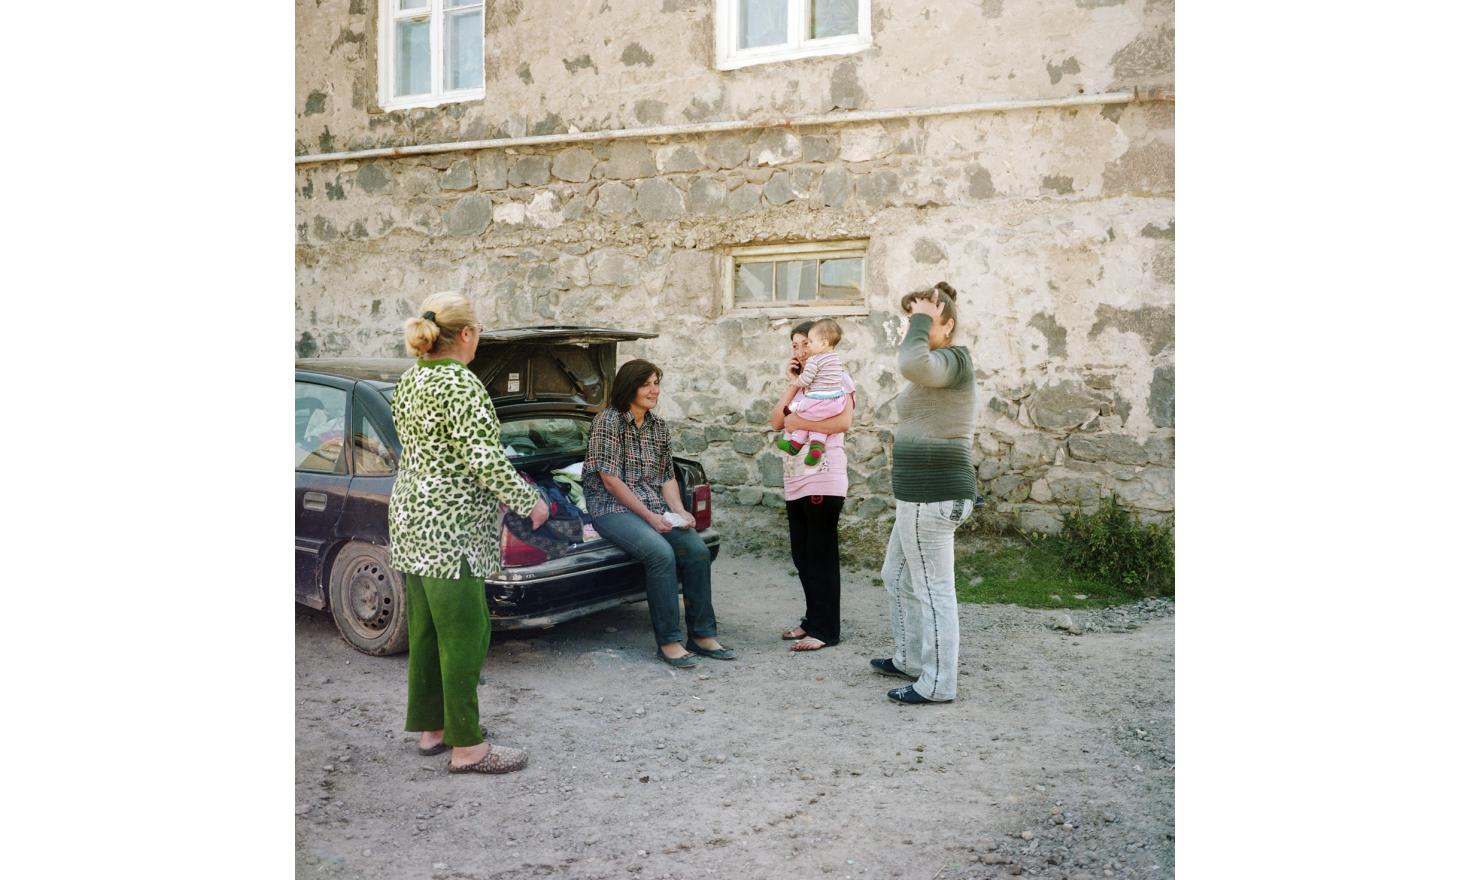 An itinerant seller comes regularly with her husband to sell clothes to women of Lichk.